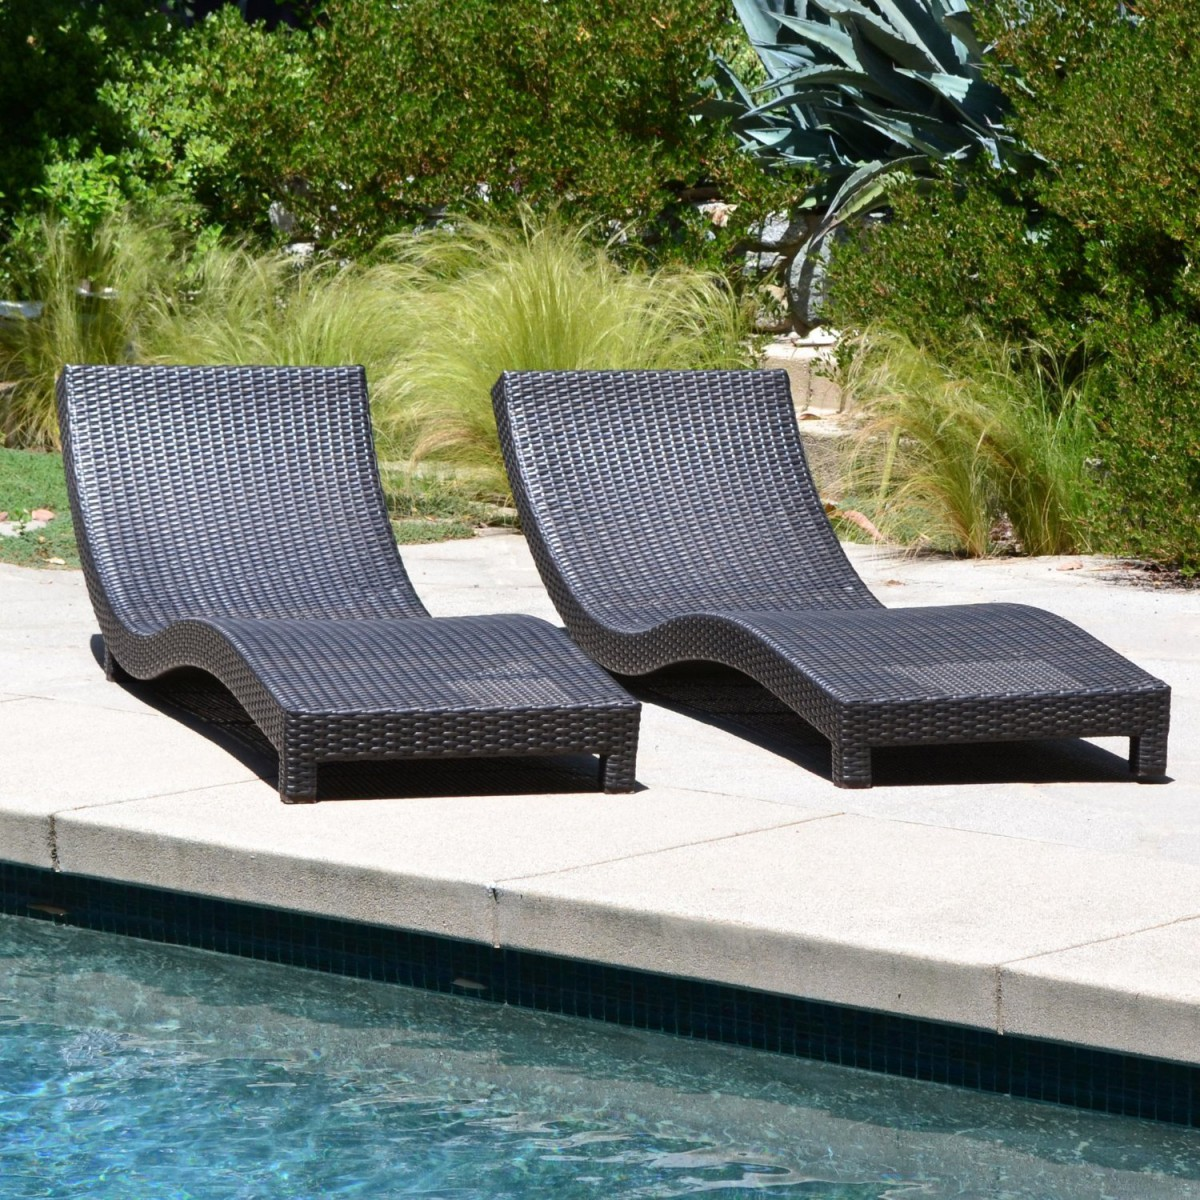 Coast modern living outdoor chaise lounge chairs w cushions for Modern patio chairs